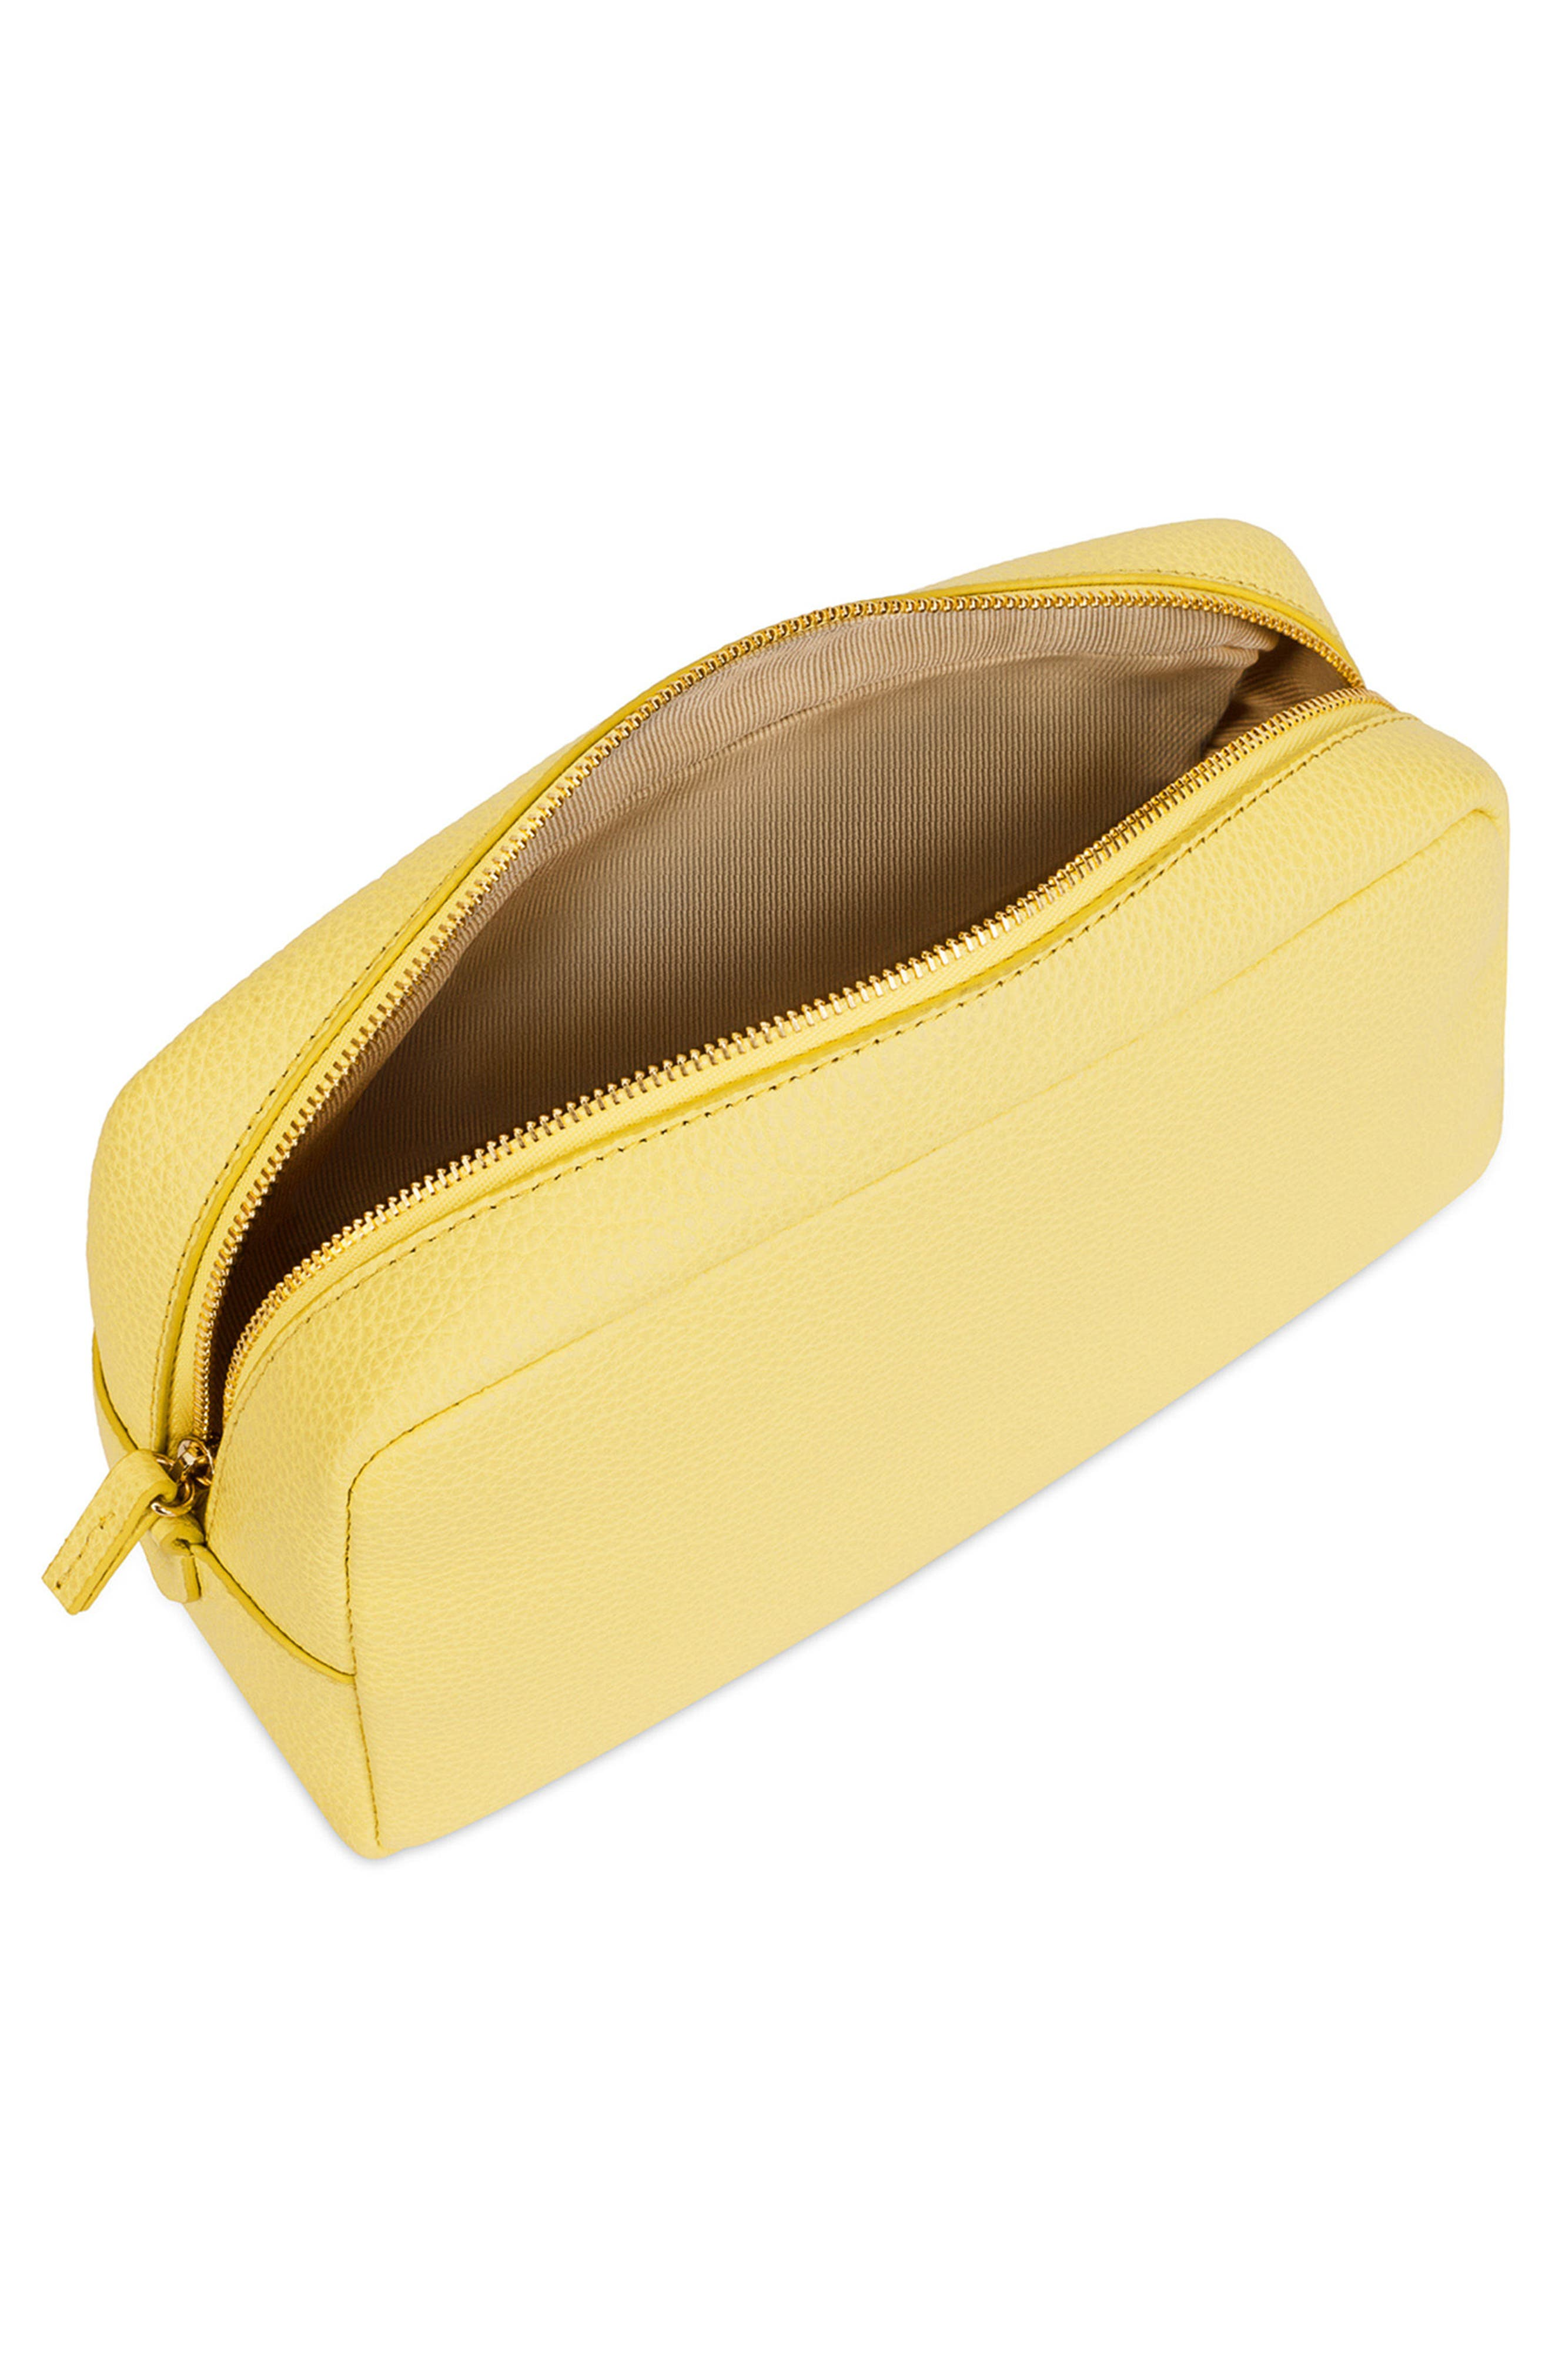 Bloom Extra Large Leather Cosmetic Bag,                             Alternate thumbnail 4, color,